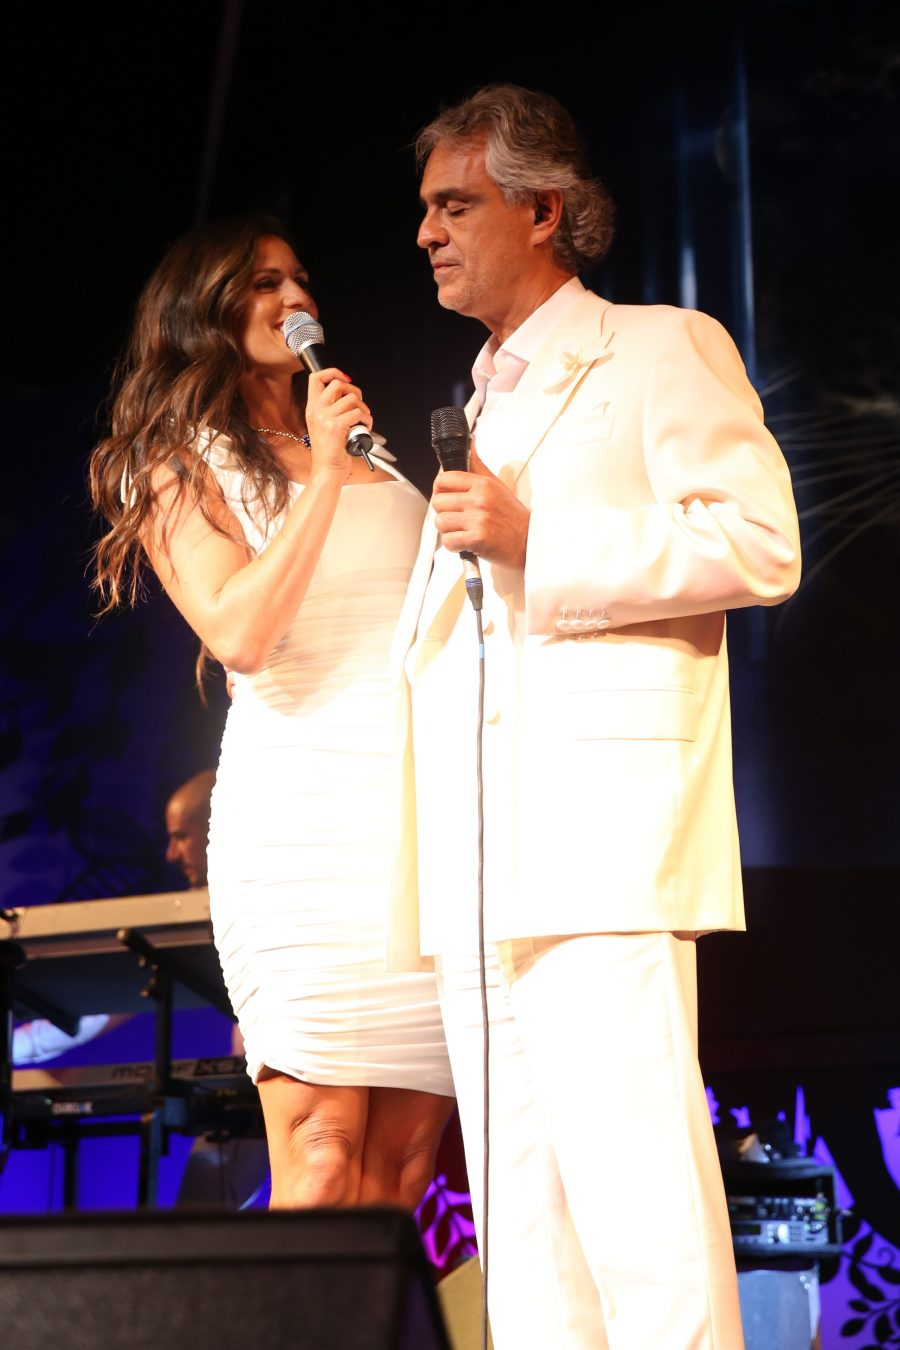 Andrea Bocelli and Veronica Berti